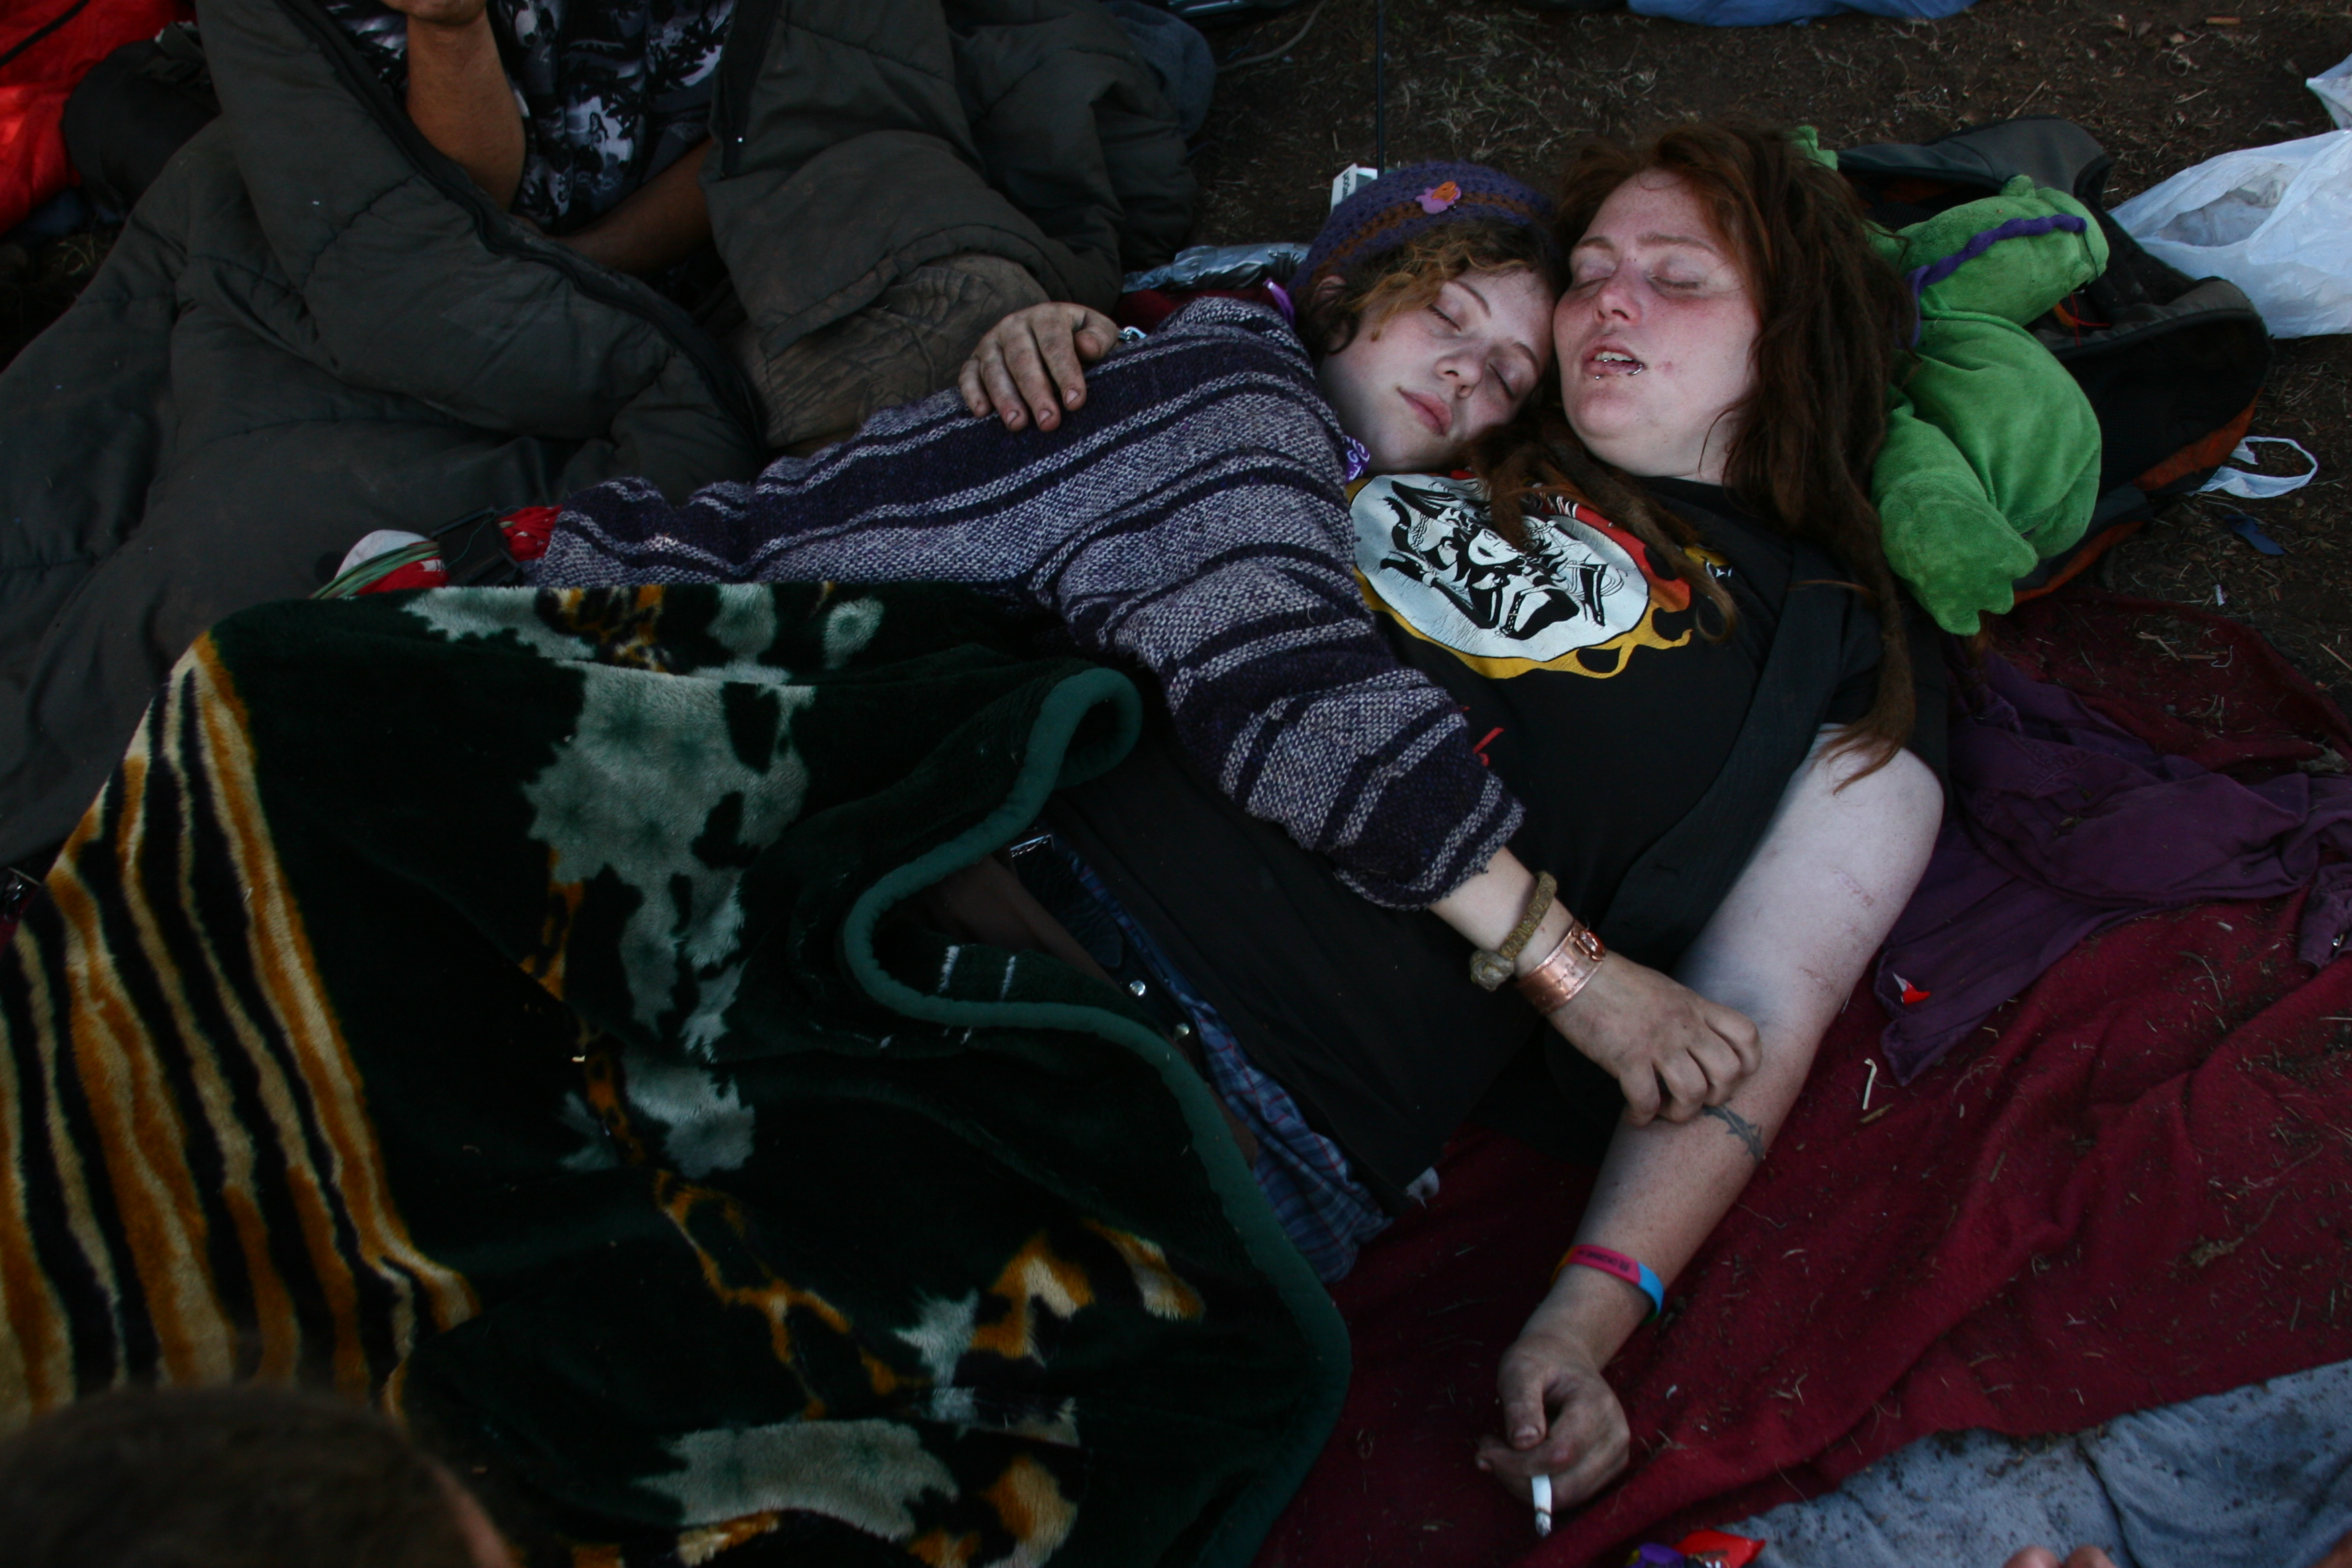 Moe and Sicka fall asleep in each other's arms. New Mexico. 2009. Photo: Kitra Cahana